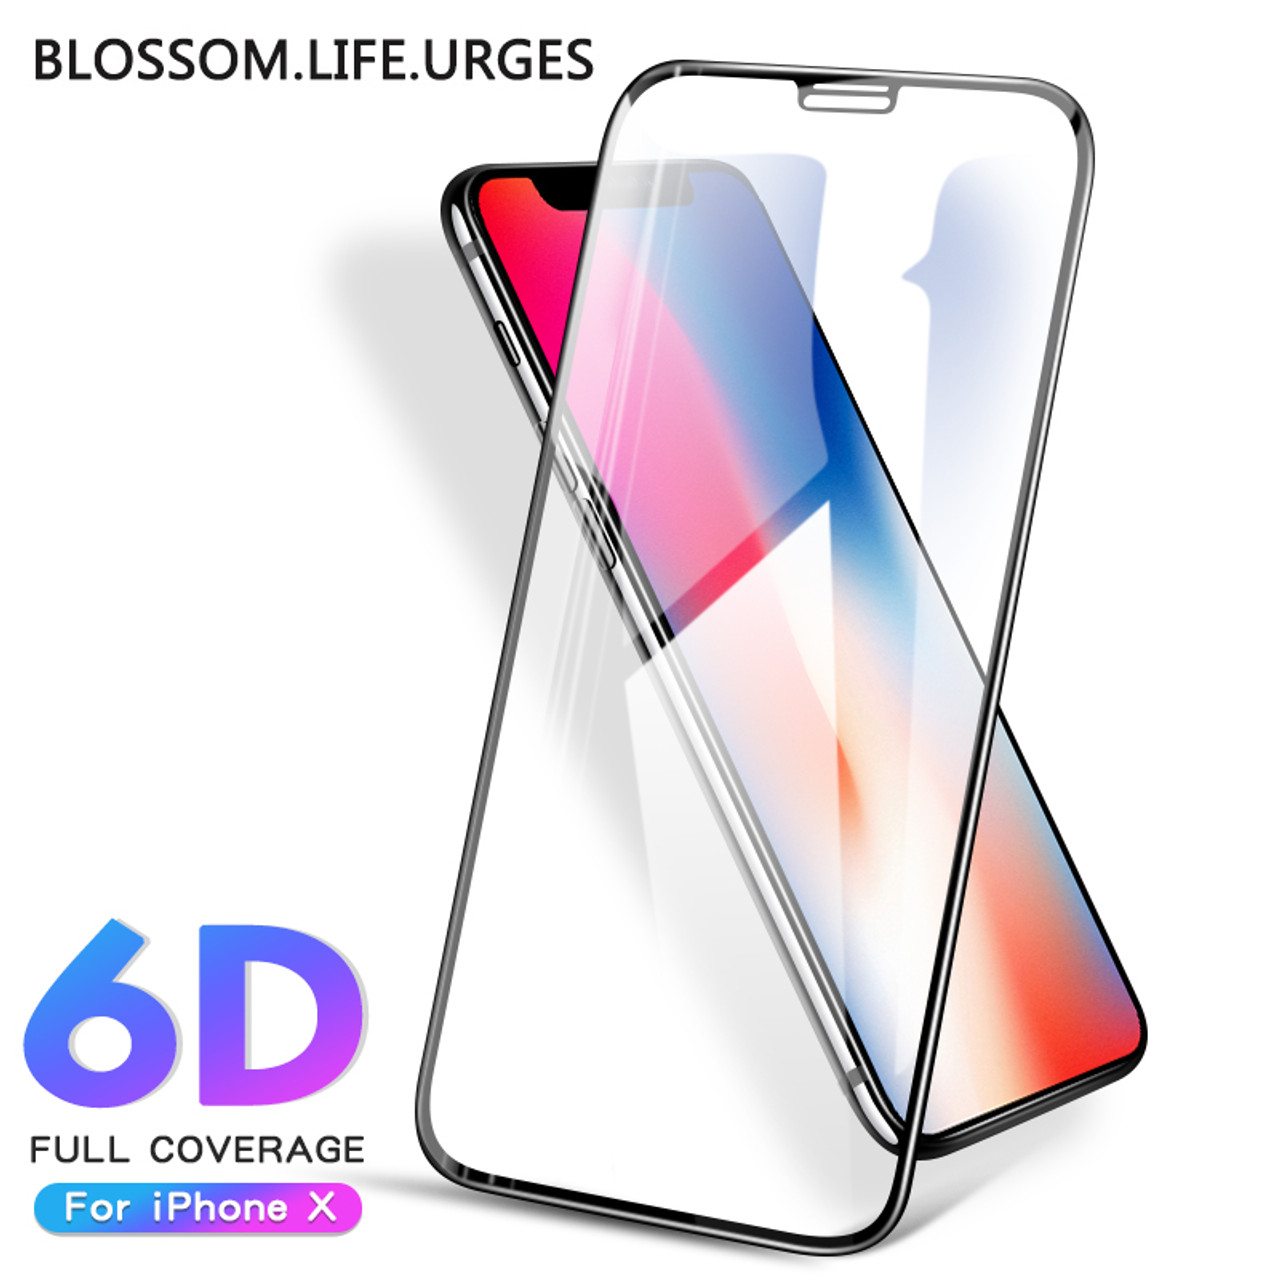 3 Pack Scratch Resistant HD Tempered Glass Screen Protector Film for iPhone 6s Plus//iPhone 7 Plus//iPhone 8 Plus Bear Village/® Screen Protector for iPhone 6 Plus//iPhone 7 Plus//iPhone 8 Plus